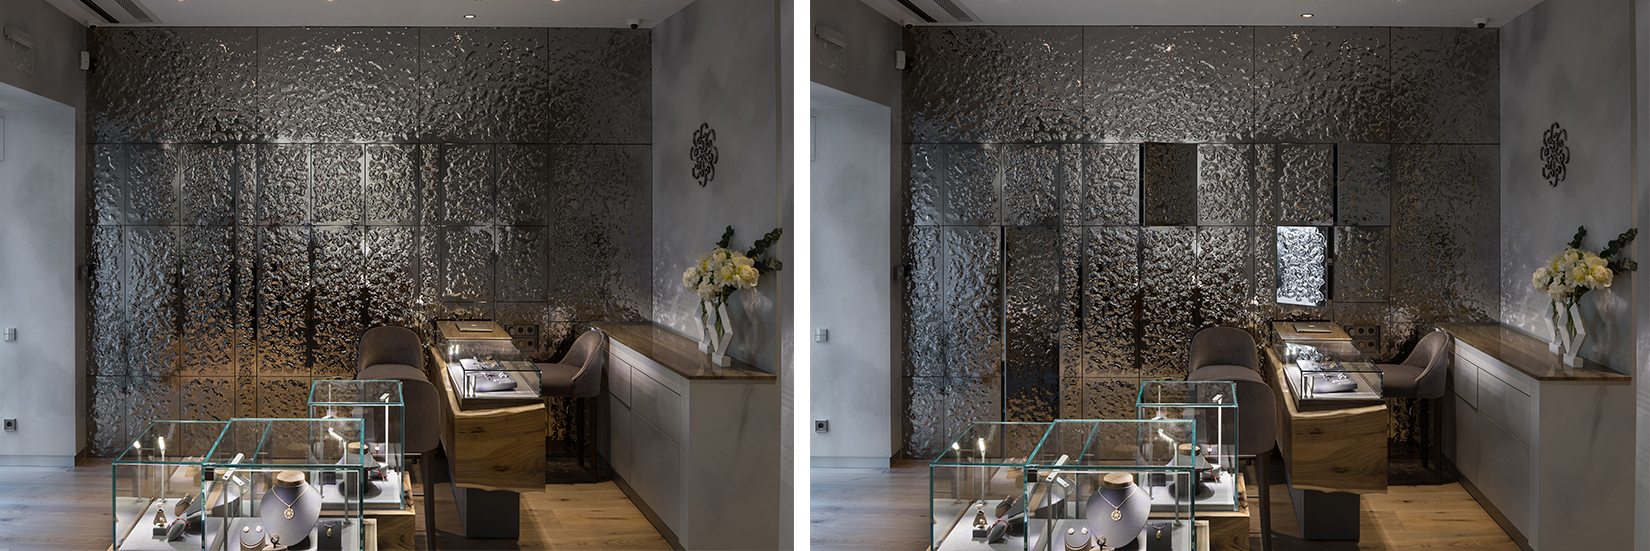 OBERIG JEWELRY  Wall Glass Panels +Object